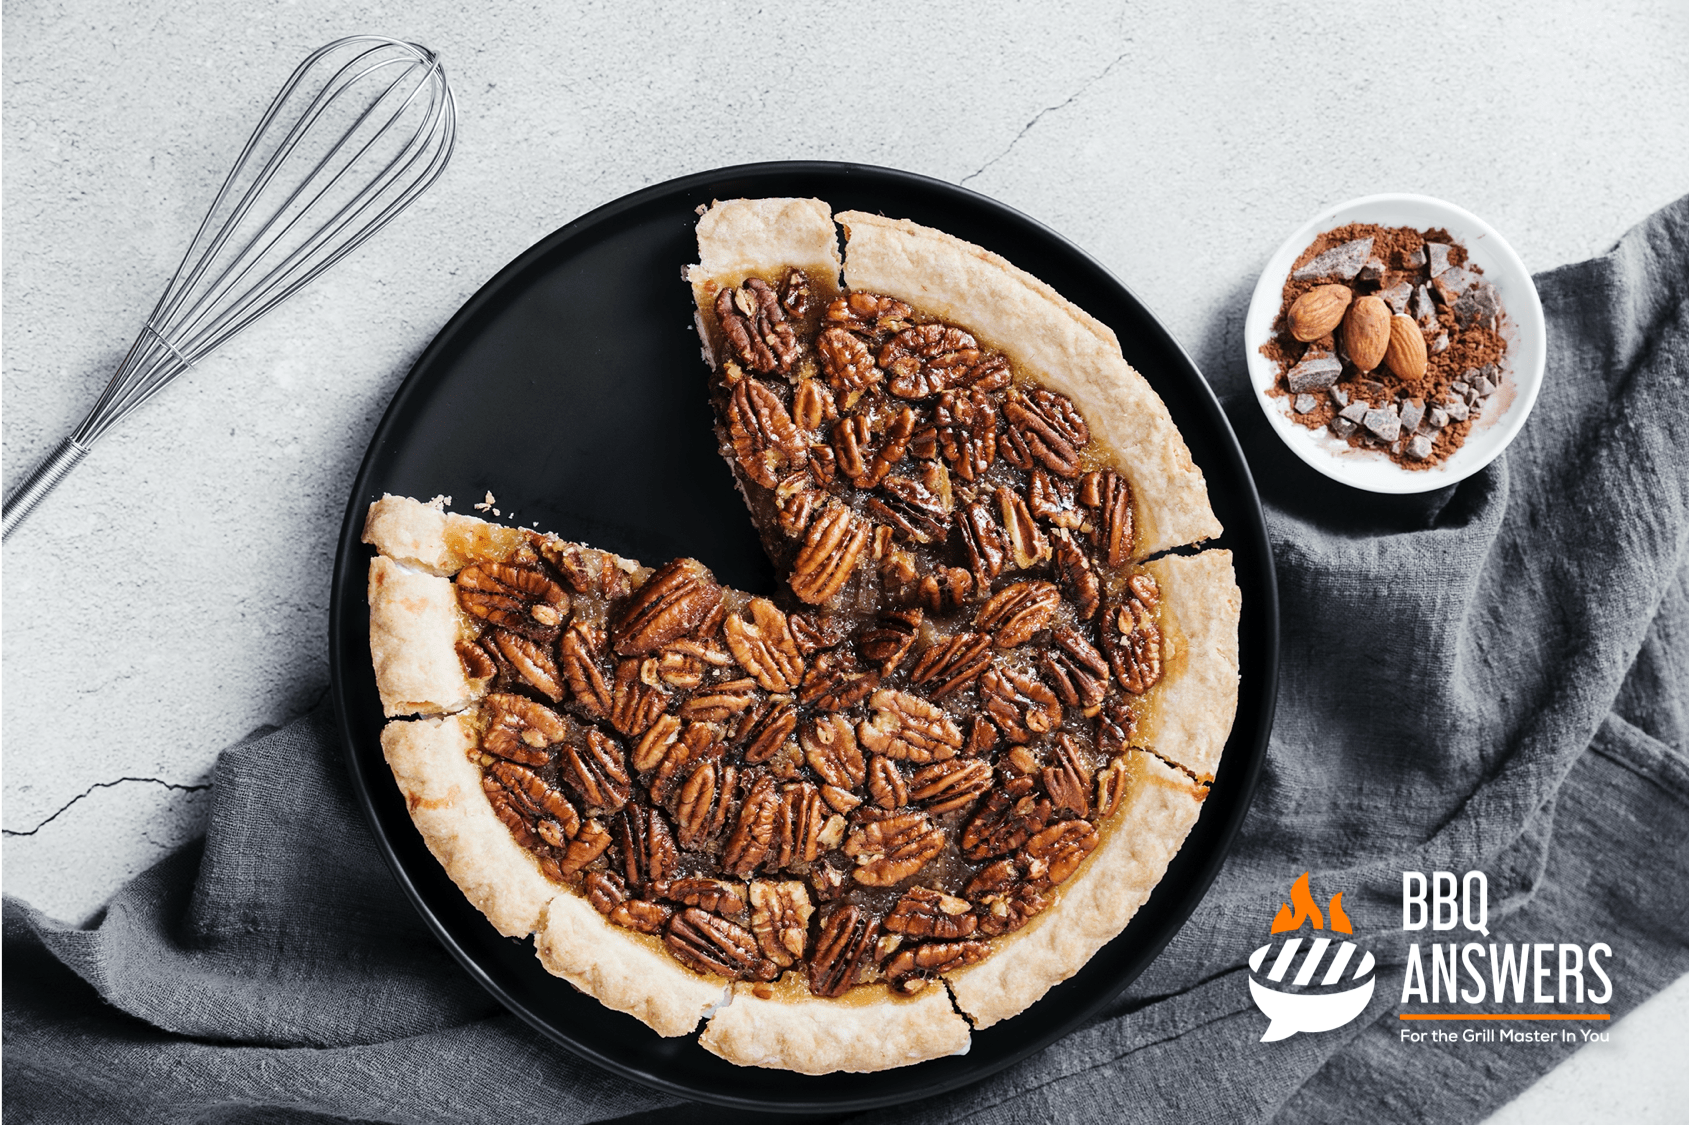 Pecan Pie | Southern Desserts For BBQ | BBQanswers